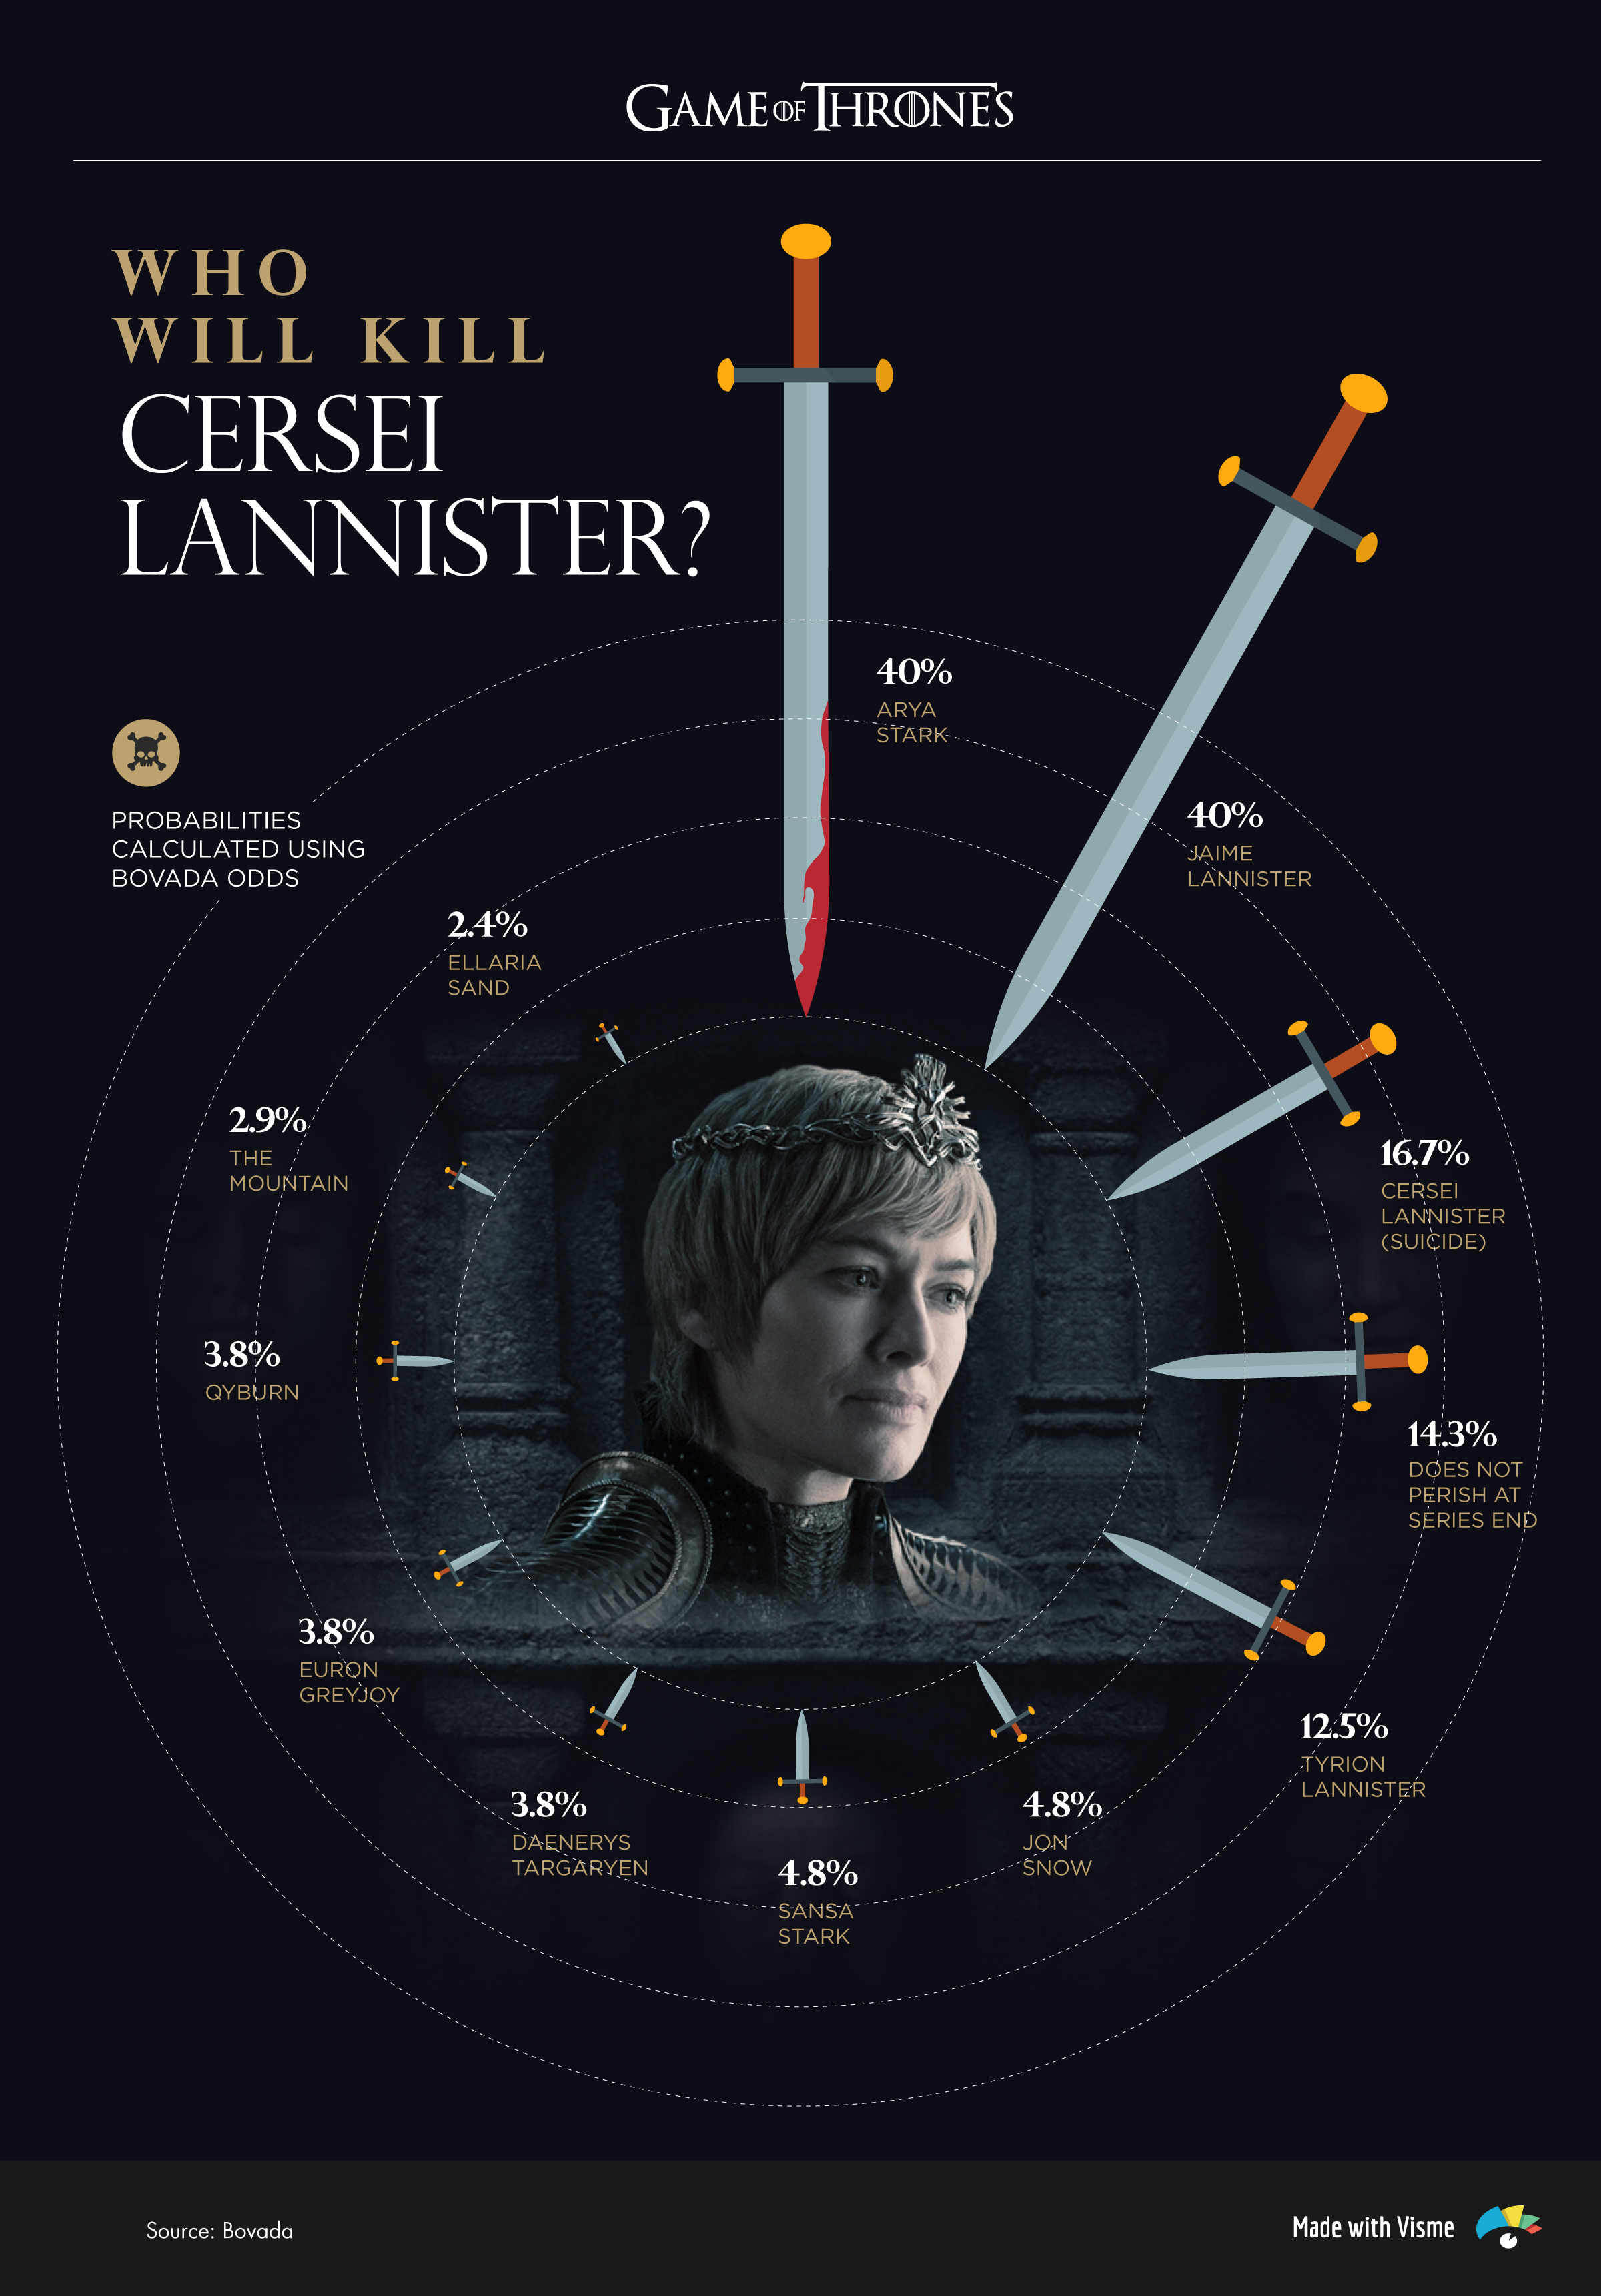 game of thrones characters who will kill cersei lannister infographic